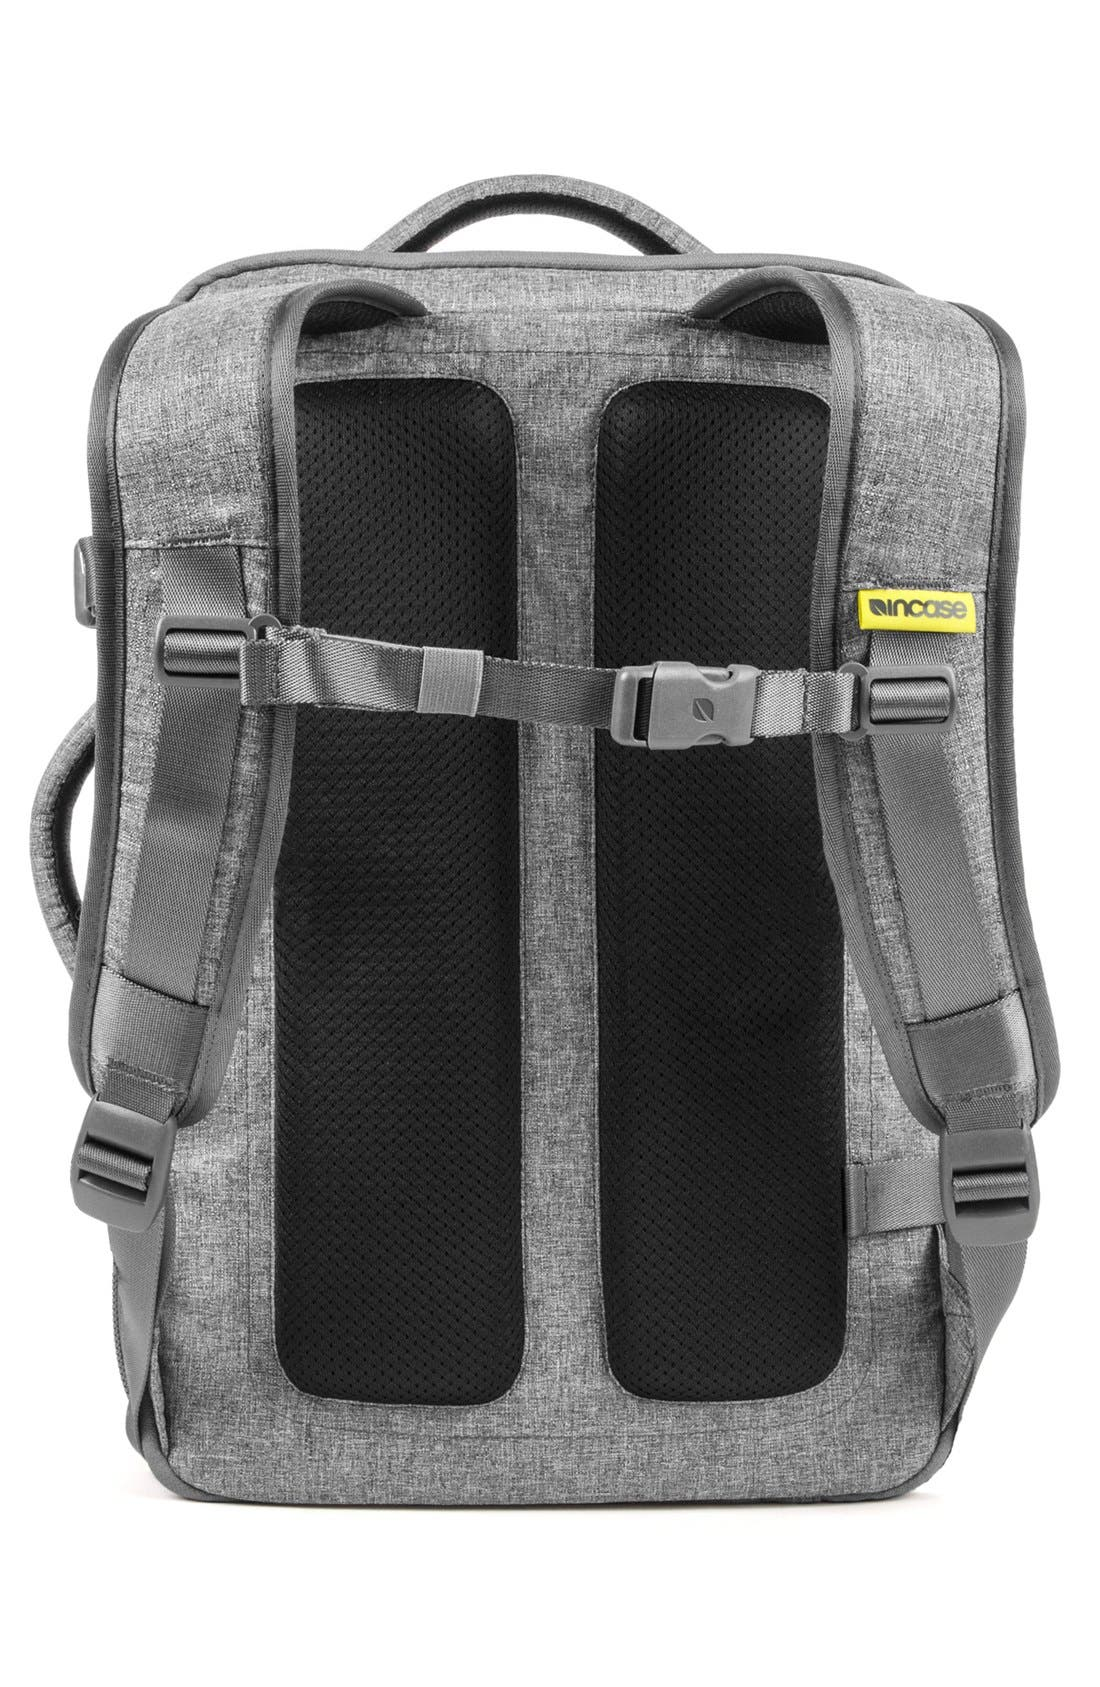 Alternate Image 2  - Incase Designs EO Travel Backpack